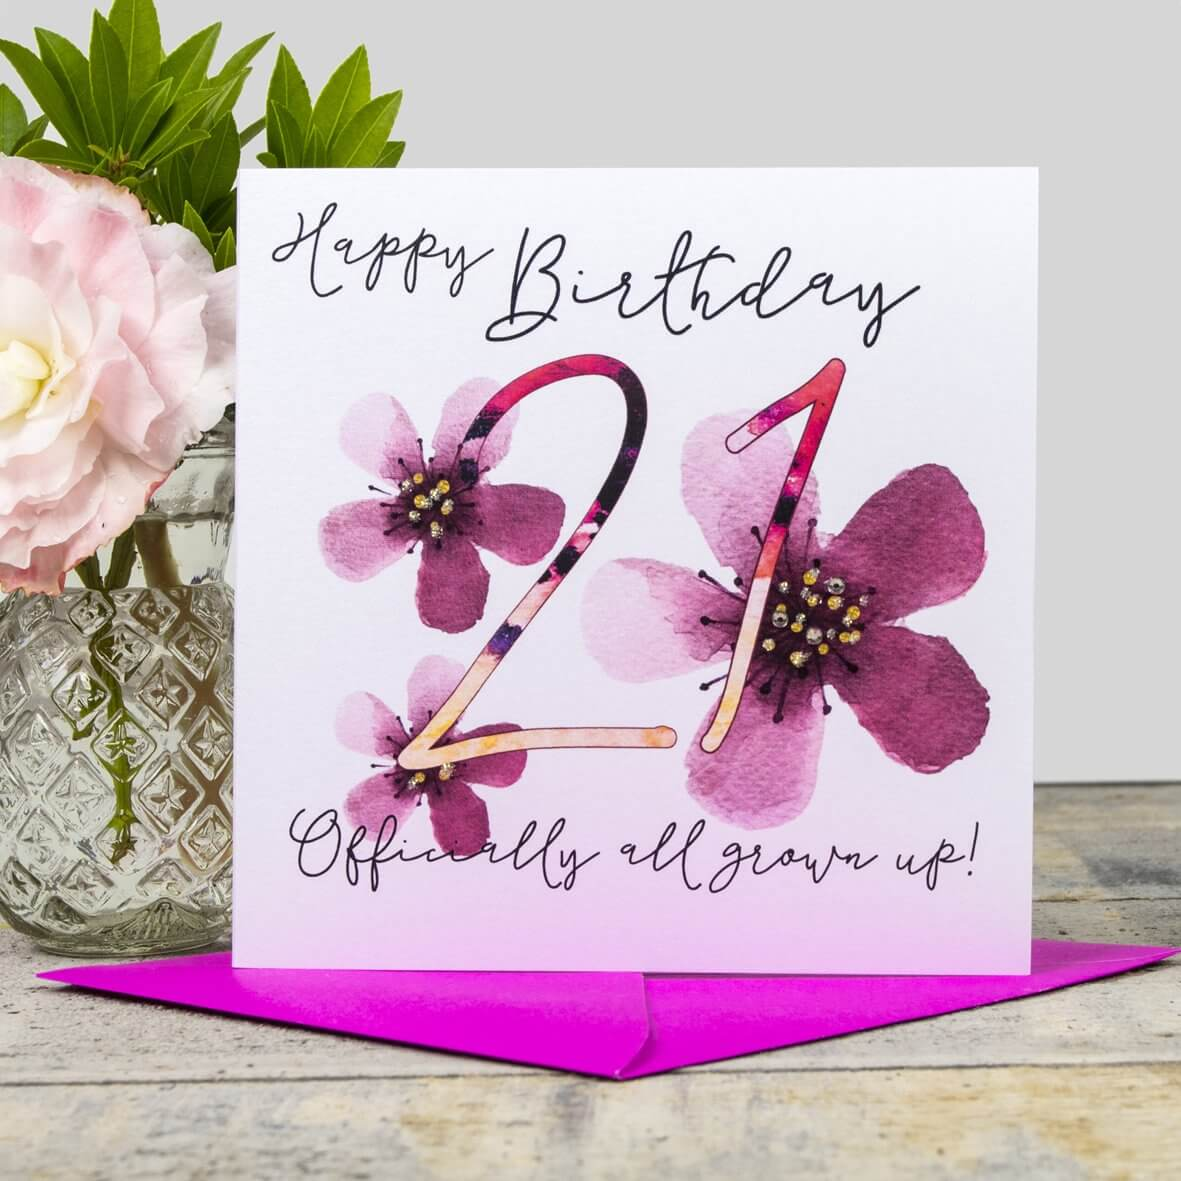 Happy 21st Birthday Card - Officially all grown up